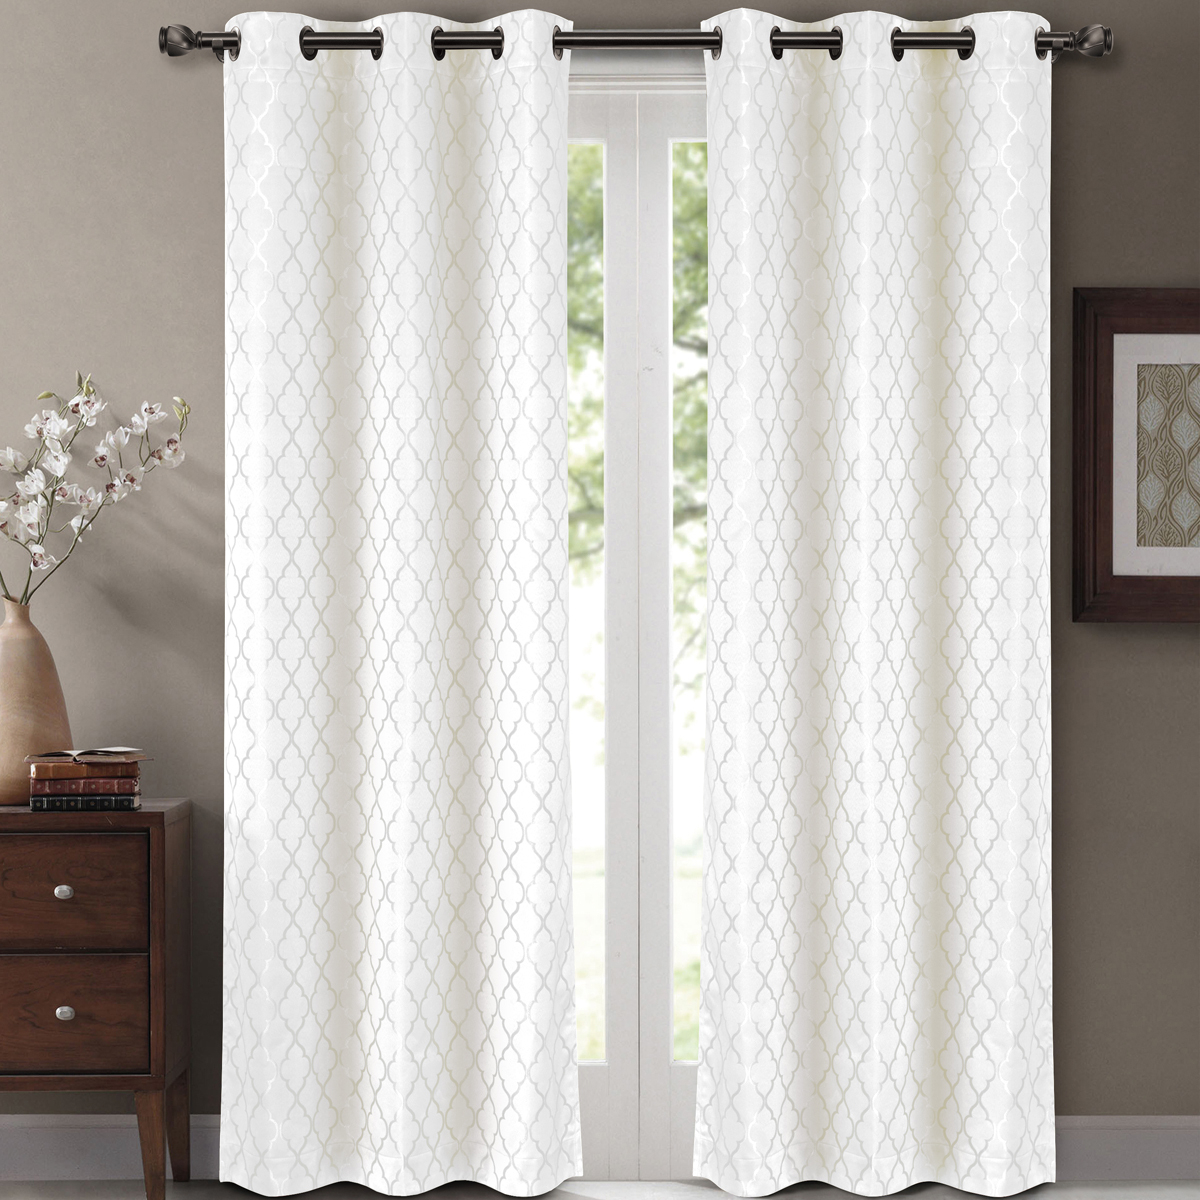 "Well Liked Pair ( Set Of 2) Willow Thermal Insulated Blackout Curtain Panels – White – W84 X L63"" – Walmart With Regard To Thermal Insulated Blackout Curtain Pairs (View 3 of 20)"